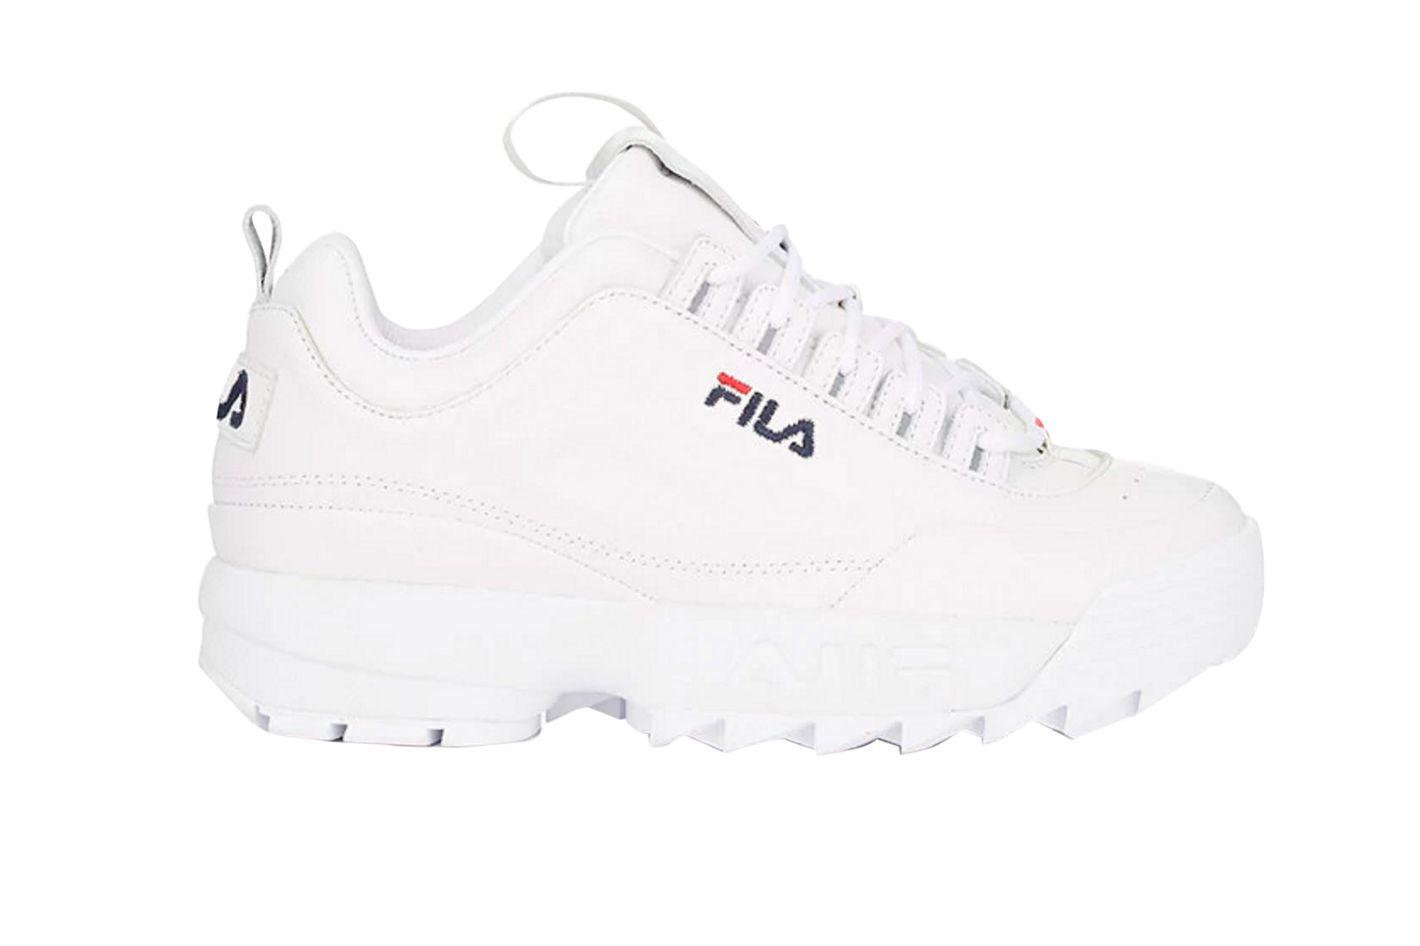 Fila Disruptor 2 Lux Leather Sneakers